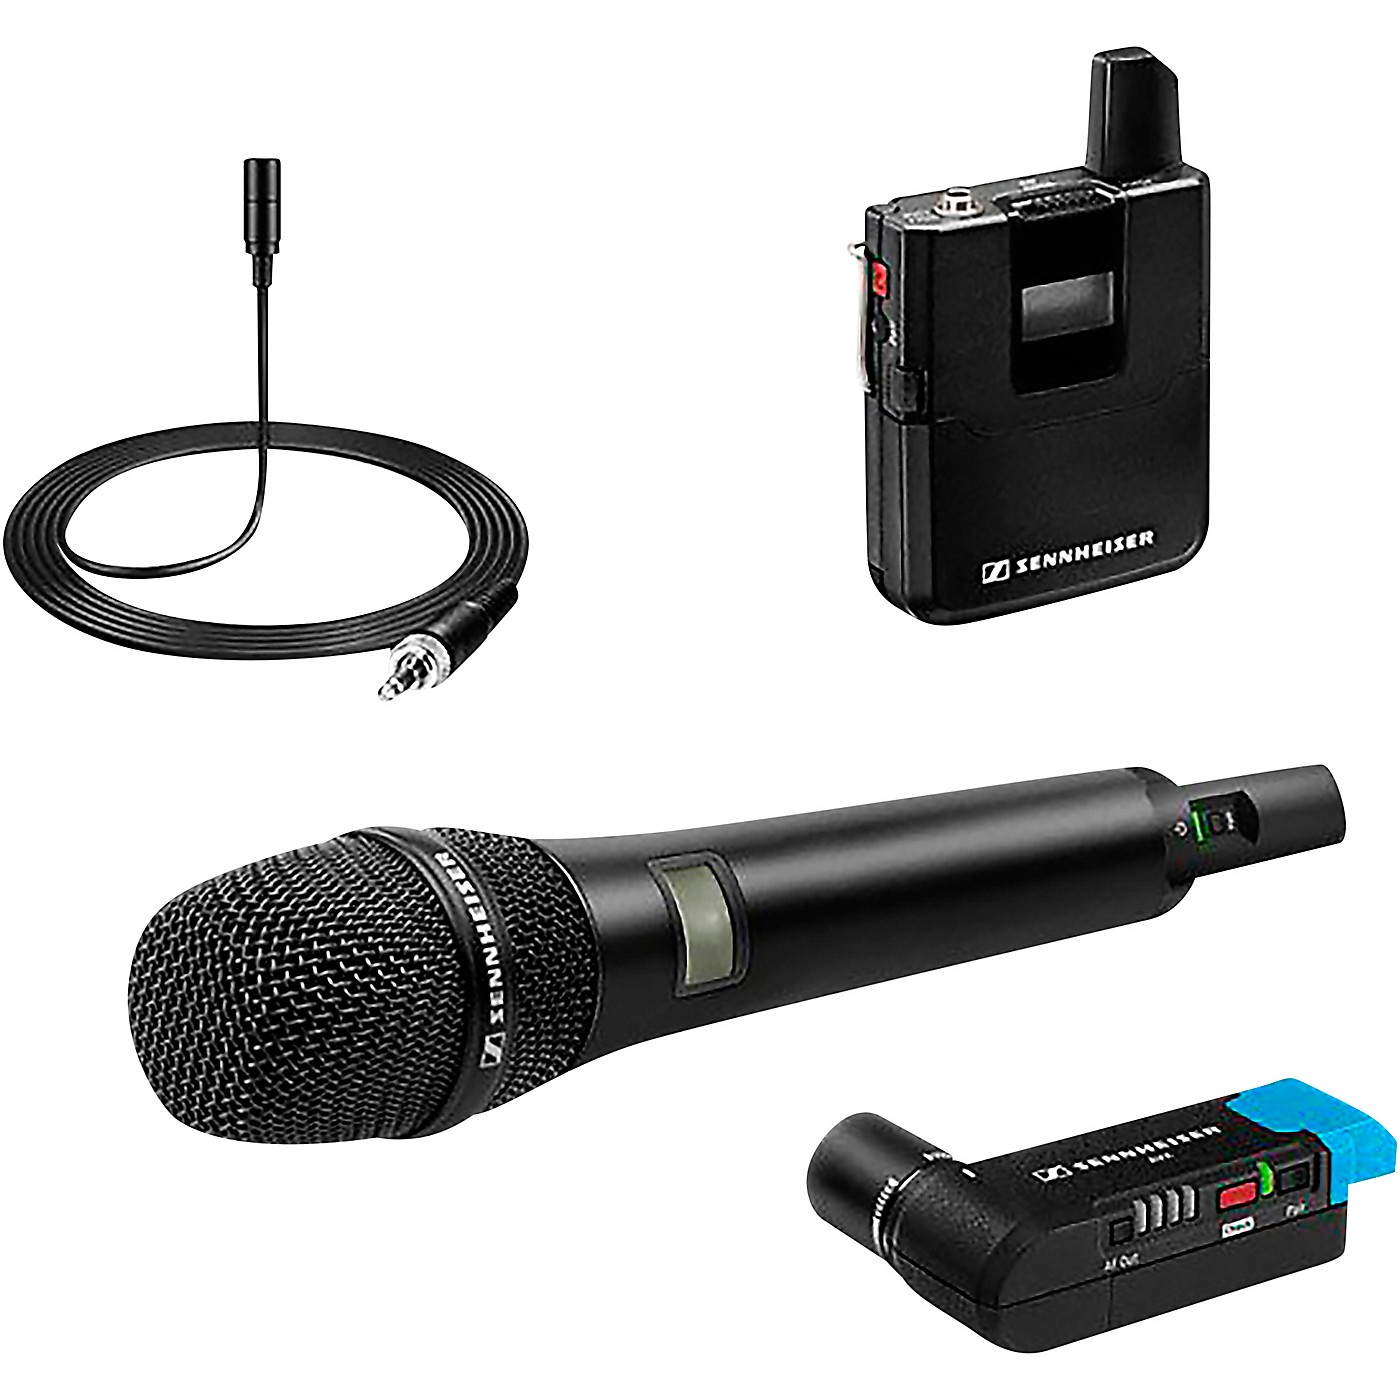 Sennheiser AVX COMBO-SET-4-US Handheld Microphone Wireless Systems with EKP Receiver and ME 2 Lavalier thumbnail